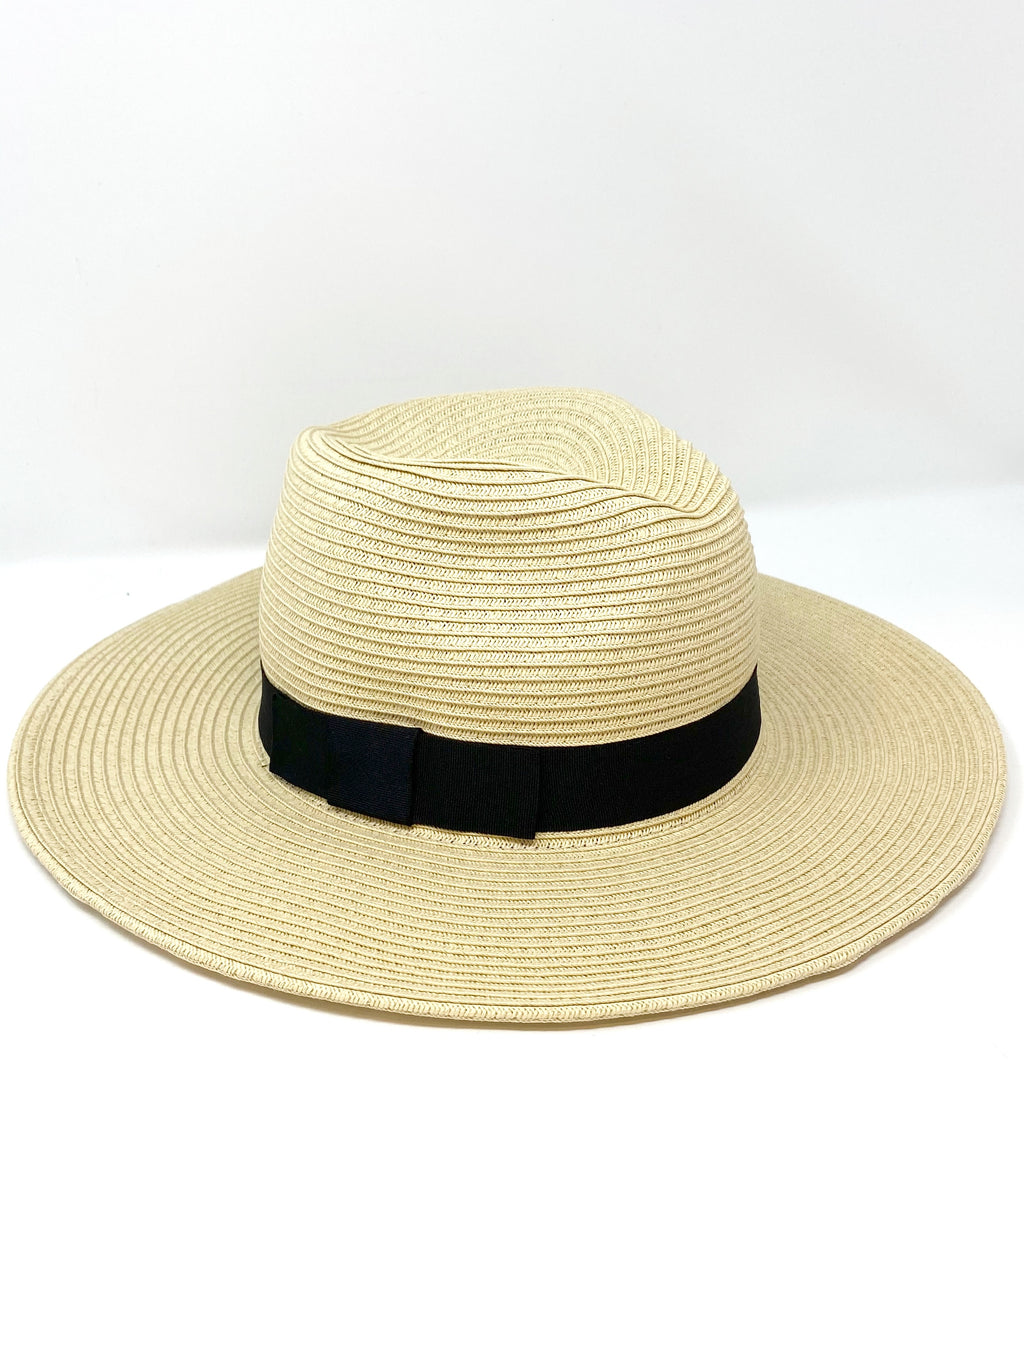 Lexi Foldable and Packable Panama Hat in Sand